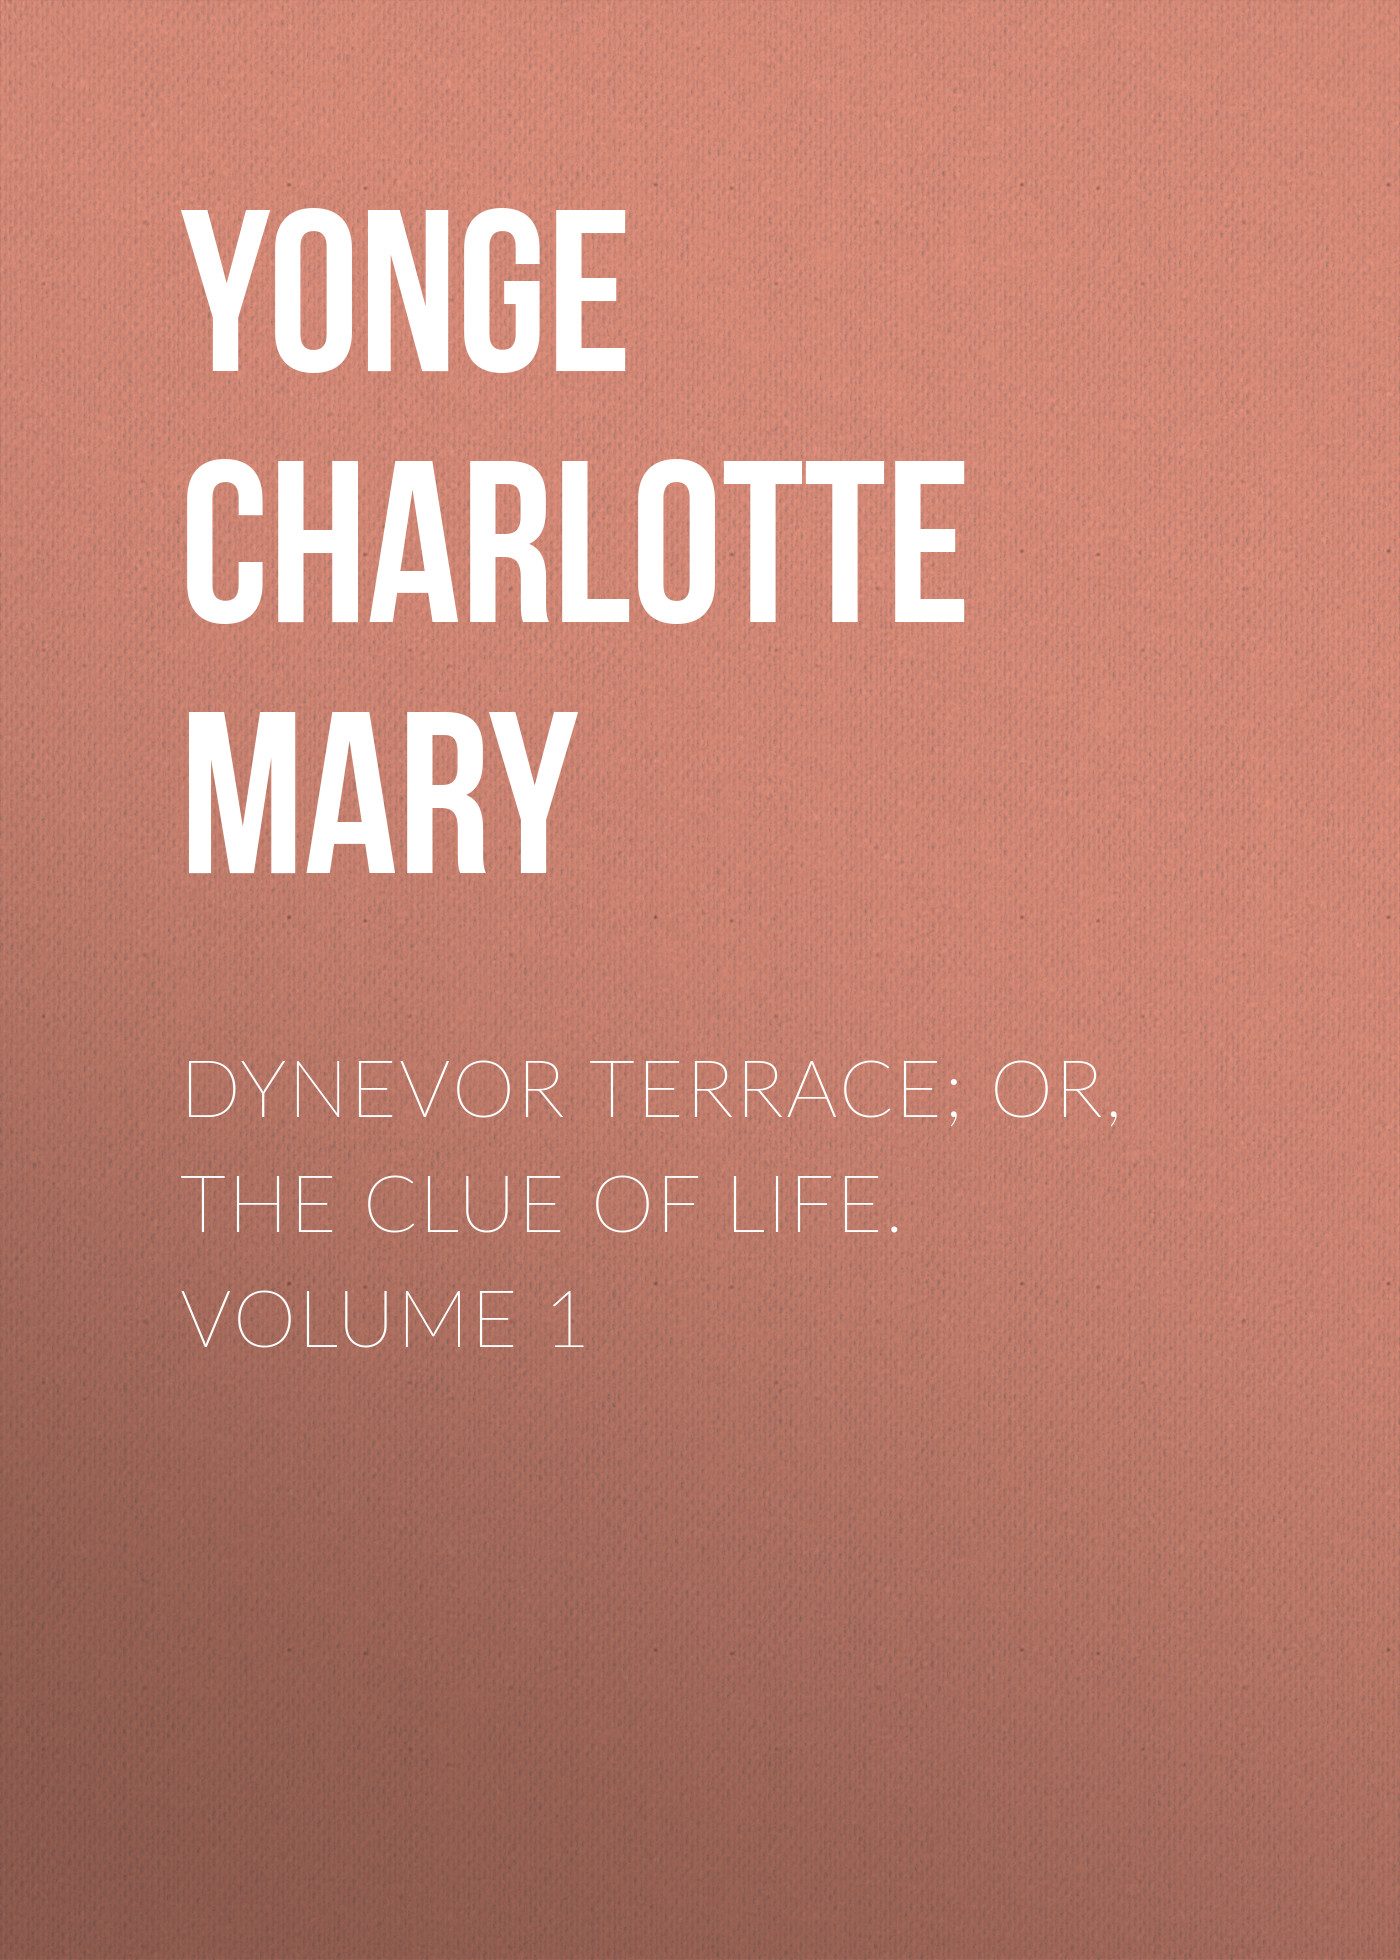 Yonge Charlotte Mary Dynevor Terrace; Or, The Clue of Life. Volume 1 charlotte m yonge life of john coleridge patteson missionary bishop of the melanesian islands